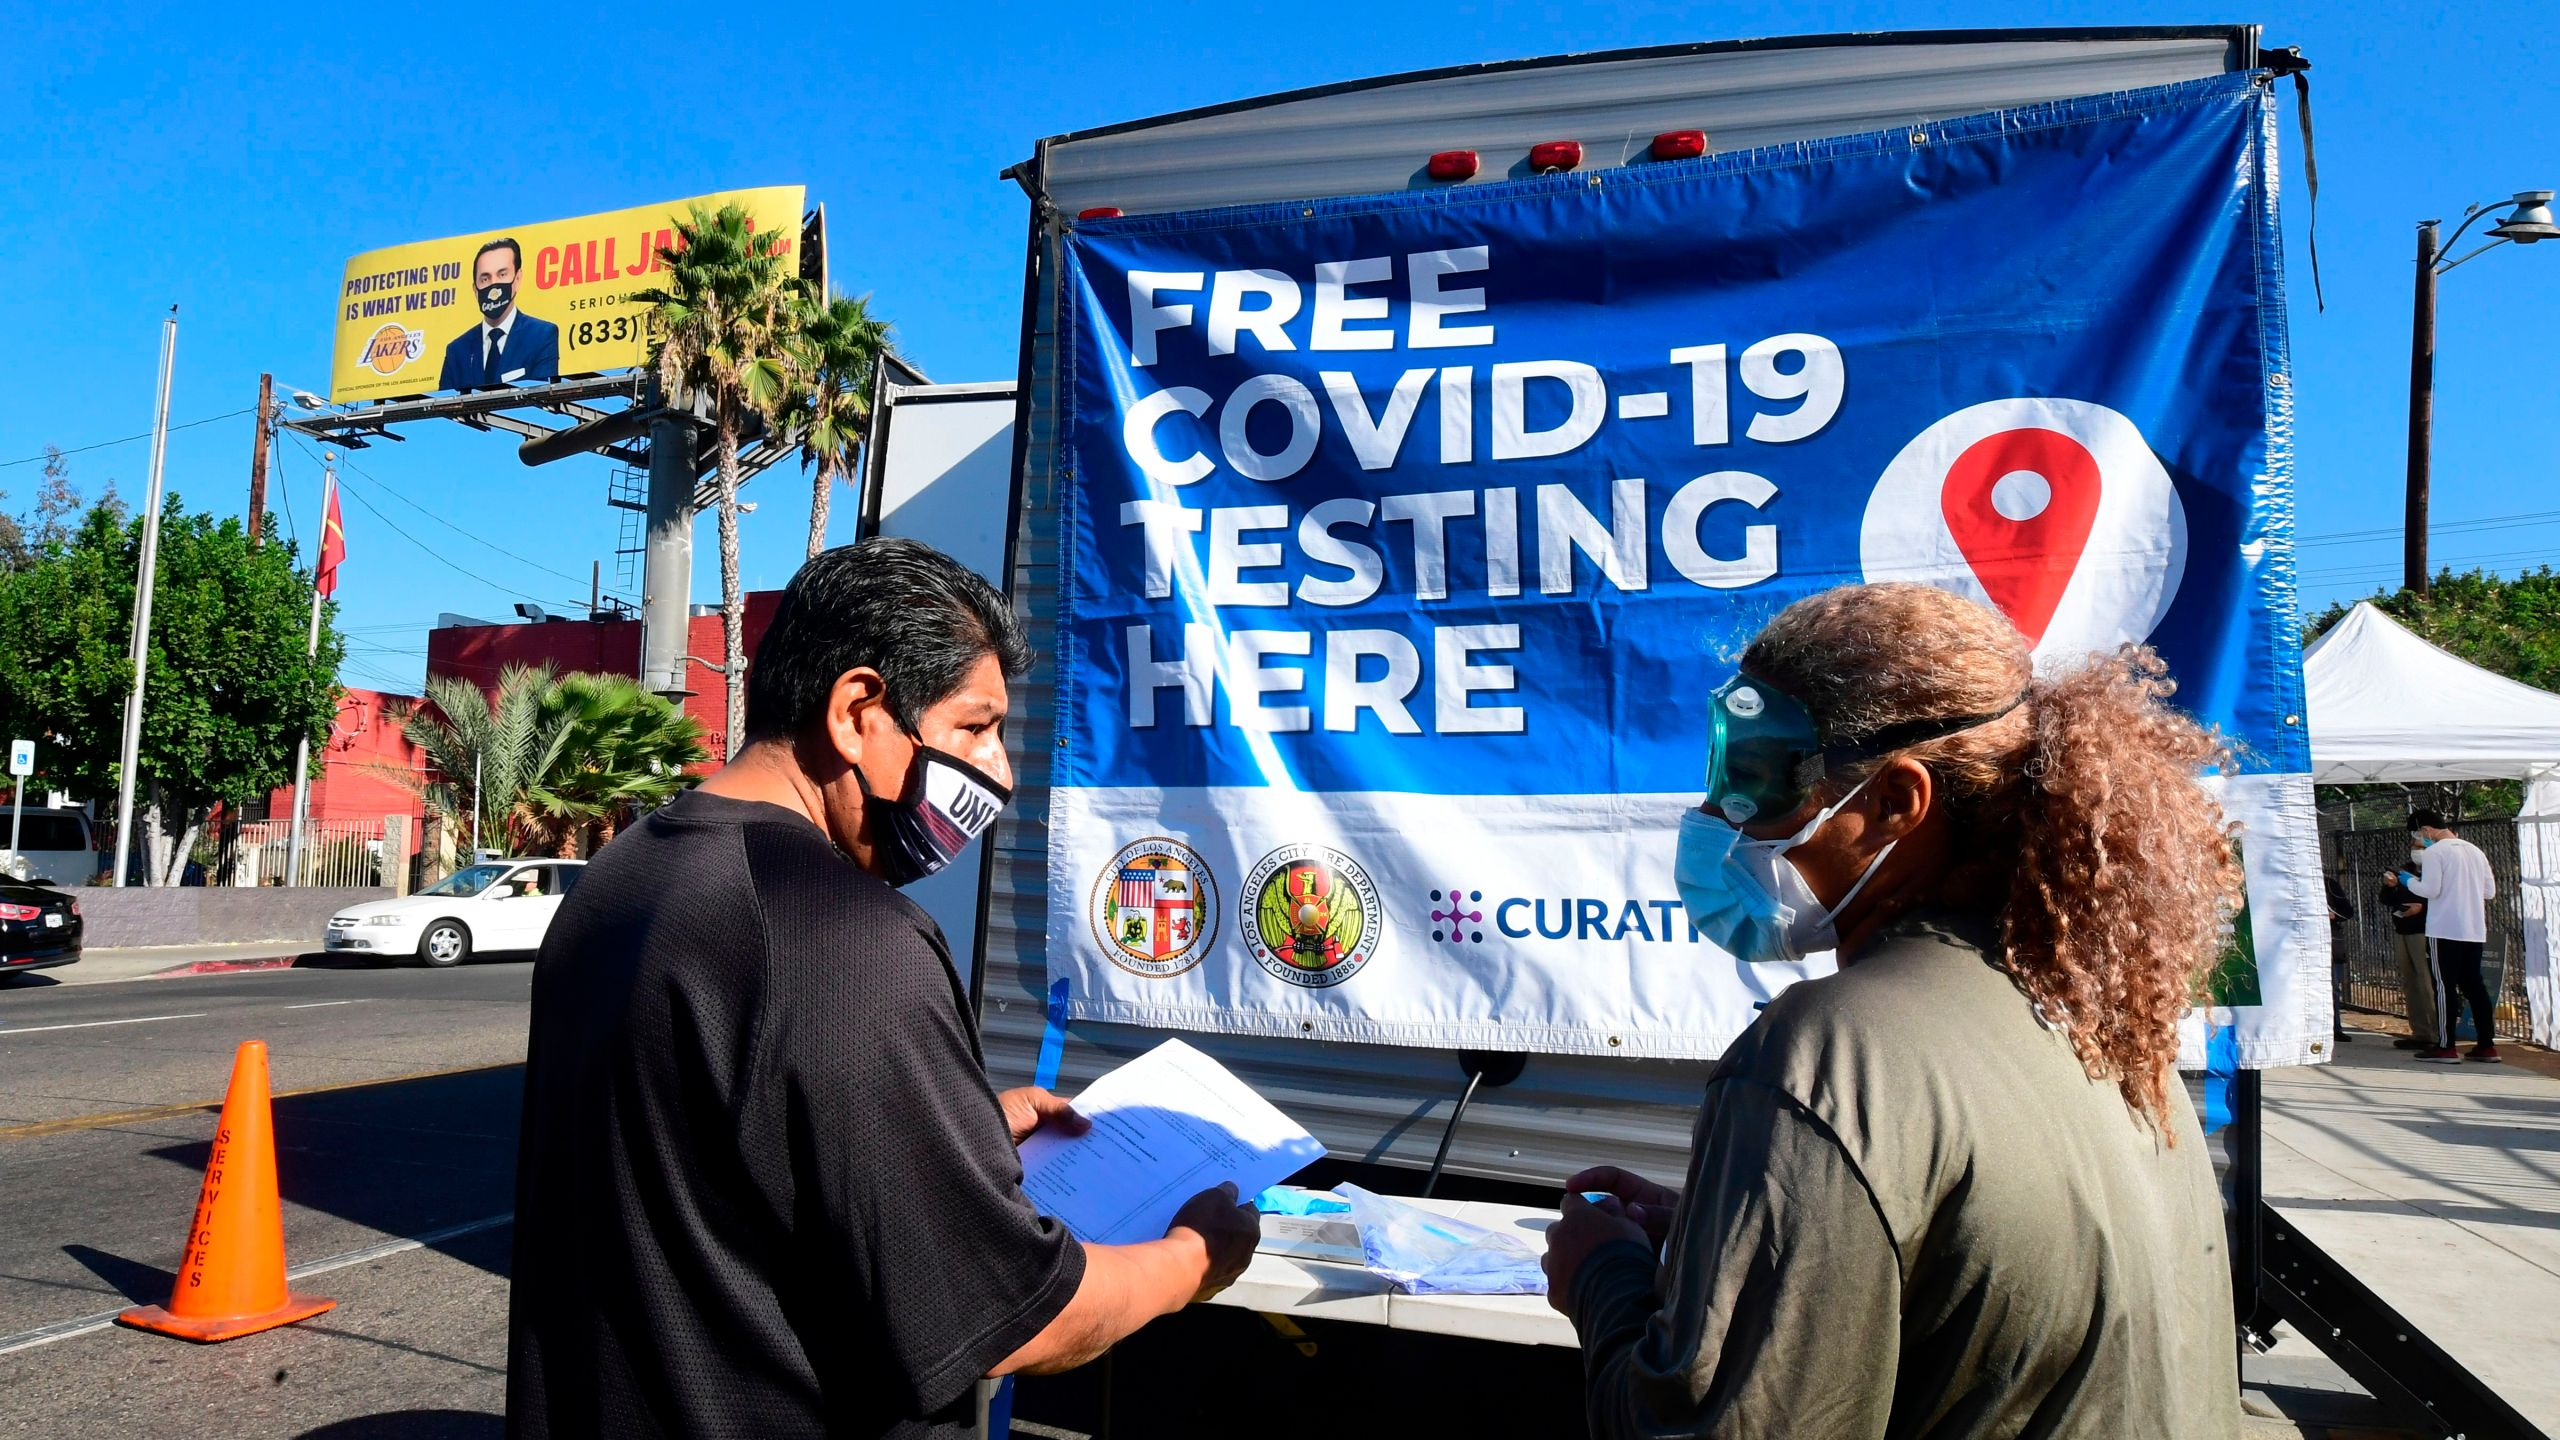 A man asks a volunteer questions at a pop-up COVID-19 test site in Los Angeles on Oct. 29, 2020. (FREDERIC J. BROWN/AFP via Getty Images)